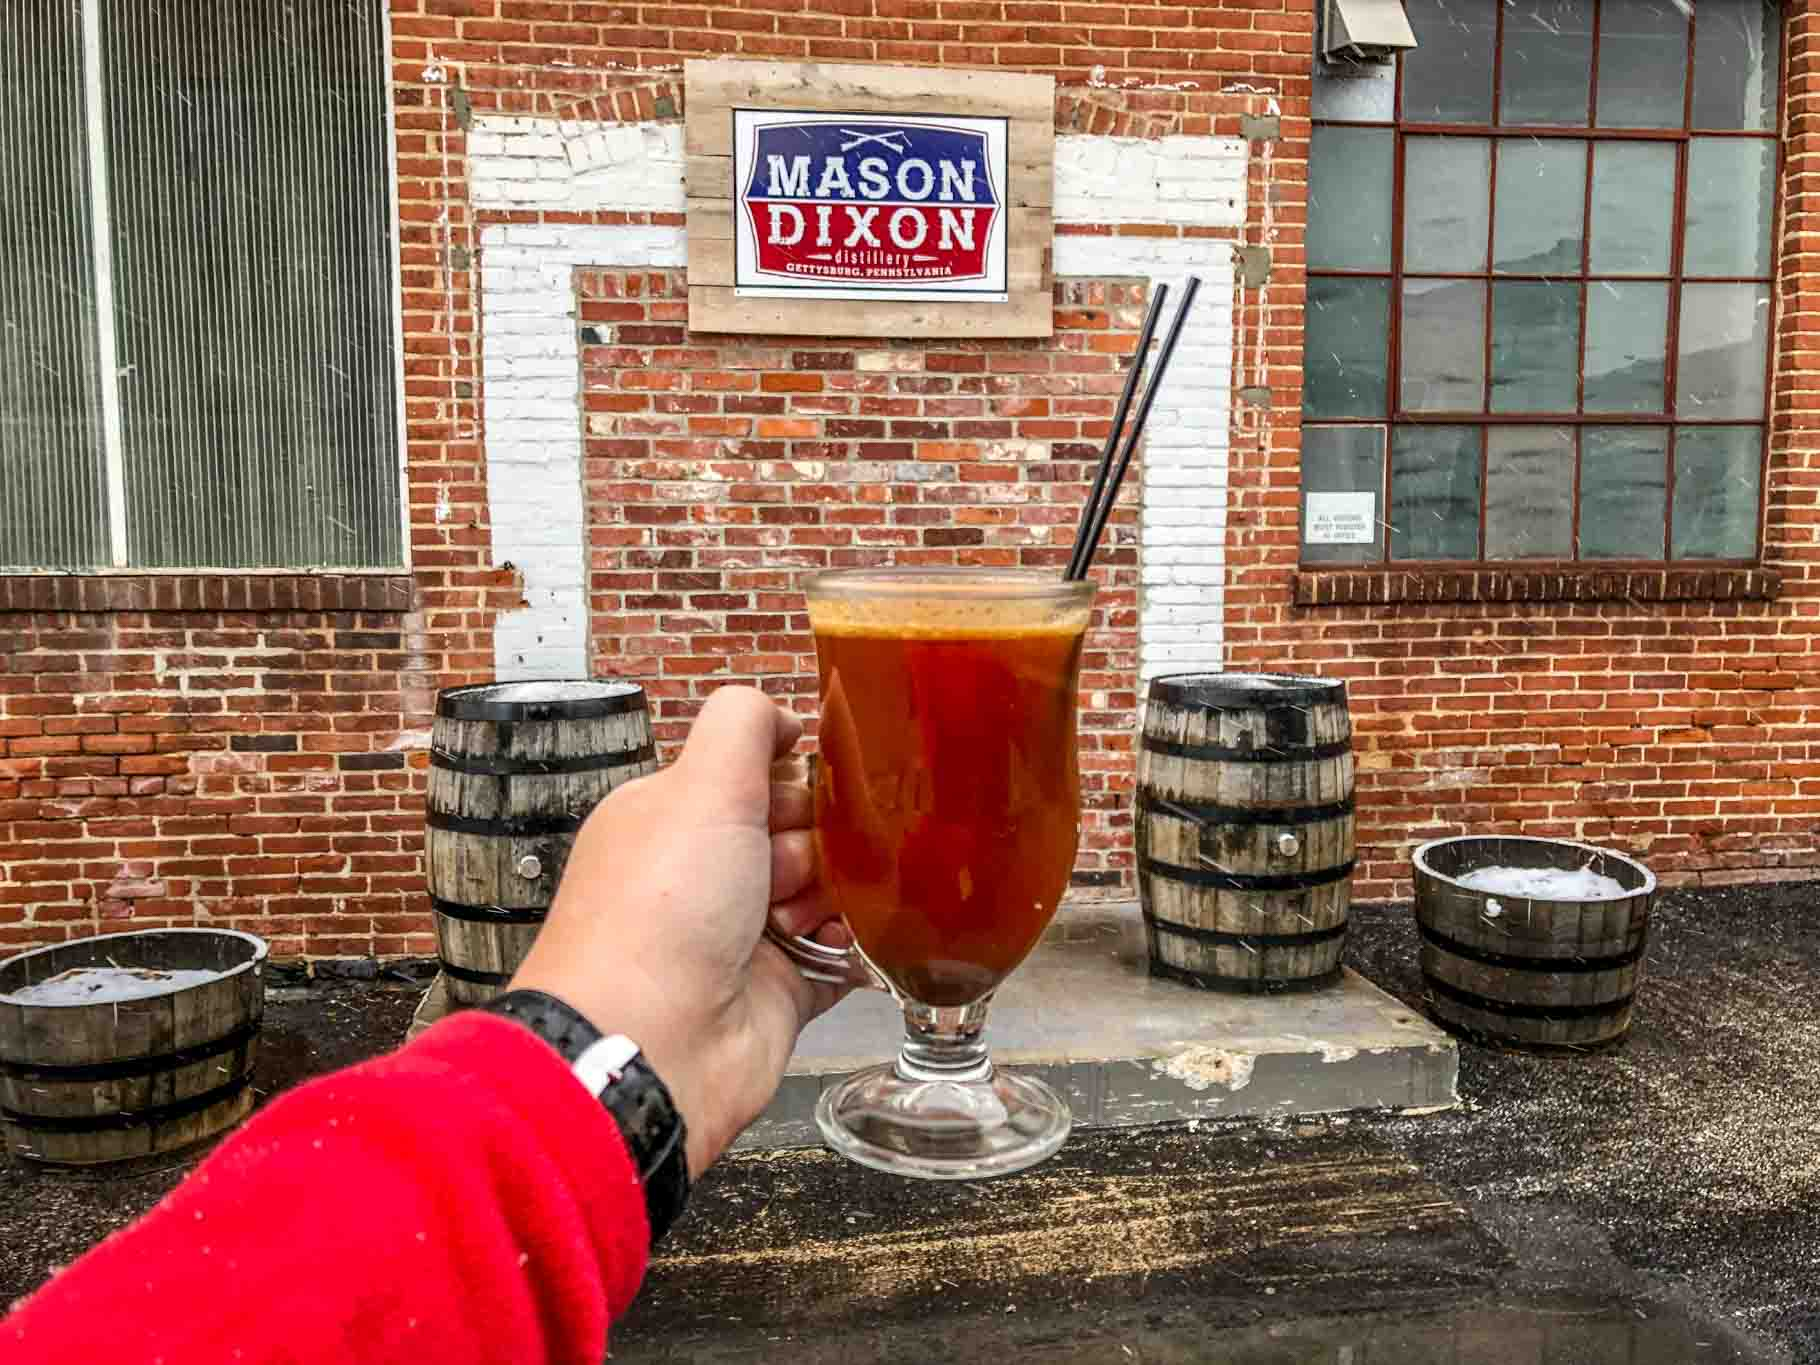 Cocktail in front of sign for Mason Dixon Distillery in Gettysburg PA